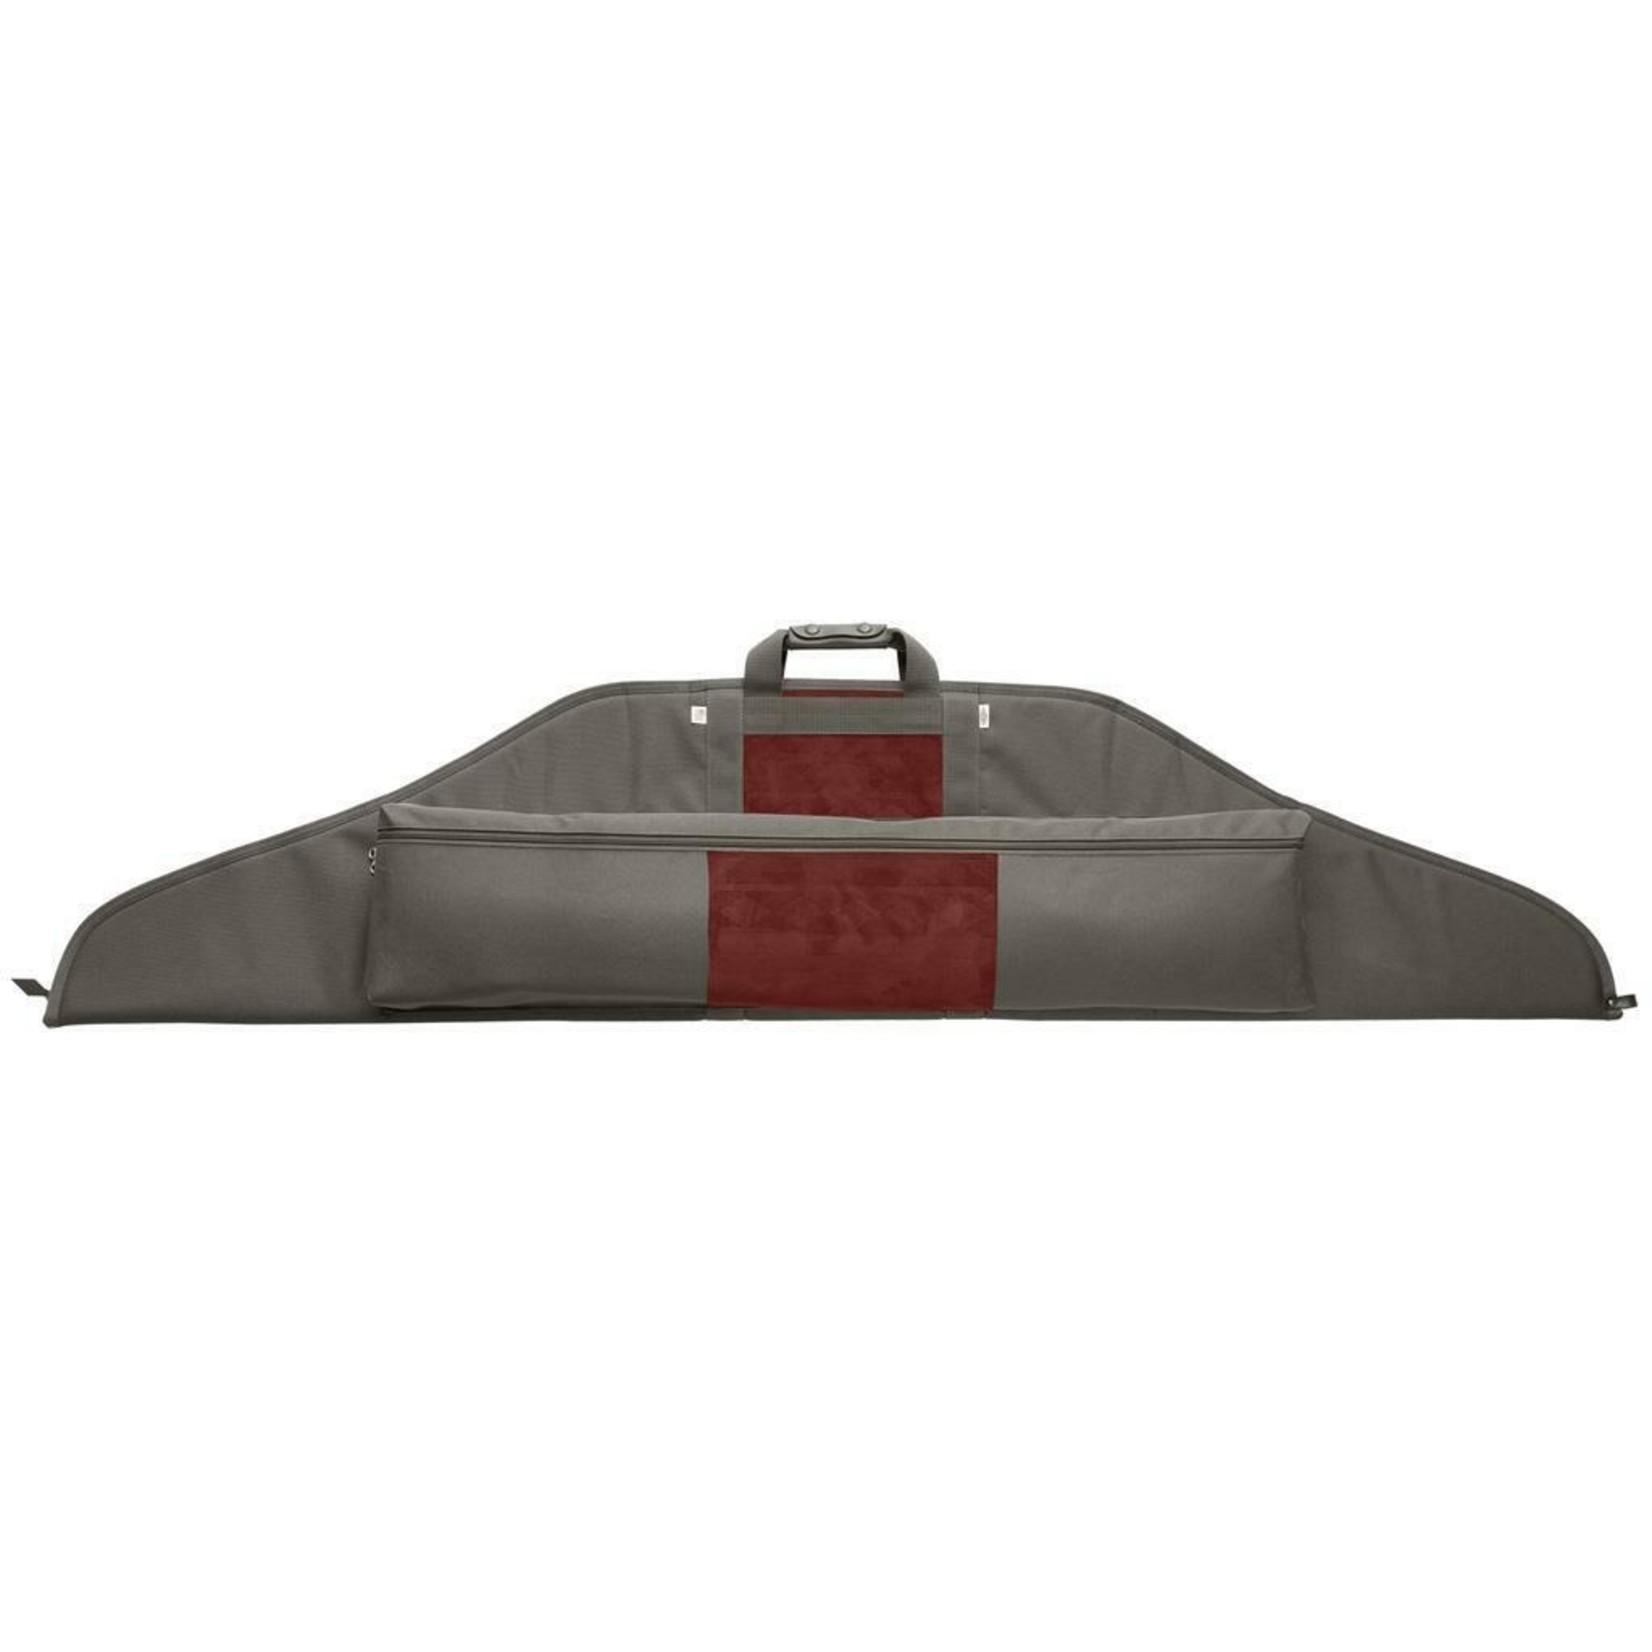 Neet Products Neet Nk-rc Recurve Bow Case Grey/burgandy 62 In.